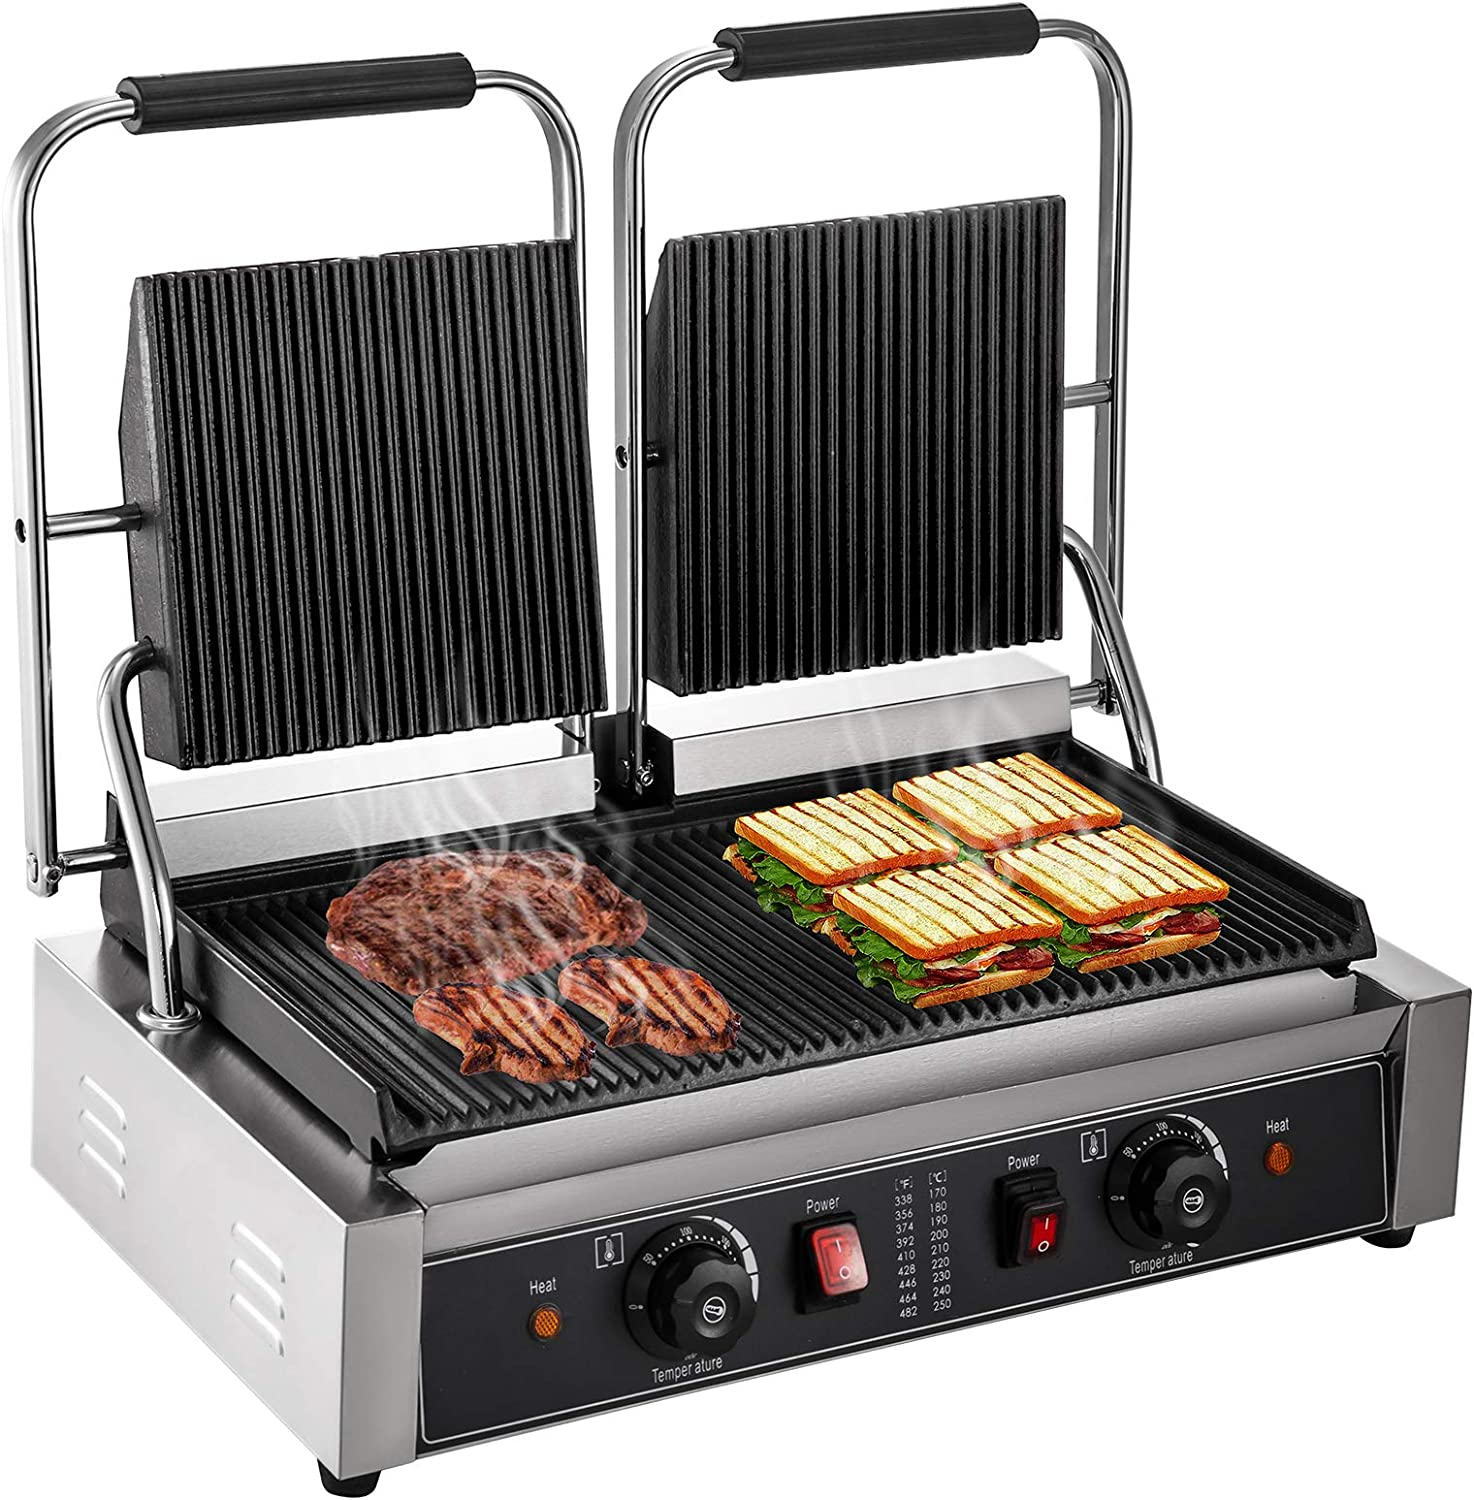 Happybuy 110V Commercial Sandwich Panini Press Grill 2X1800W Temperature Control 122°F-572°F Commercial Panini Grill Non Stick Surface for Hamburgers Steaks Bacons (Double Grooved Plates)